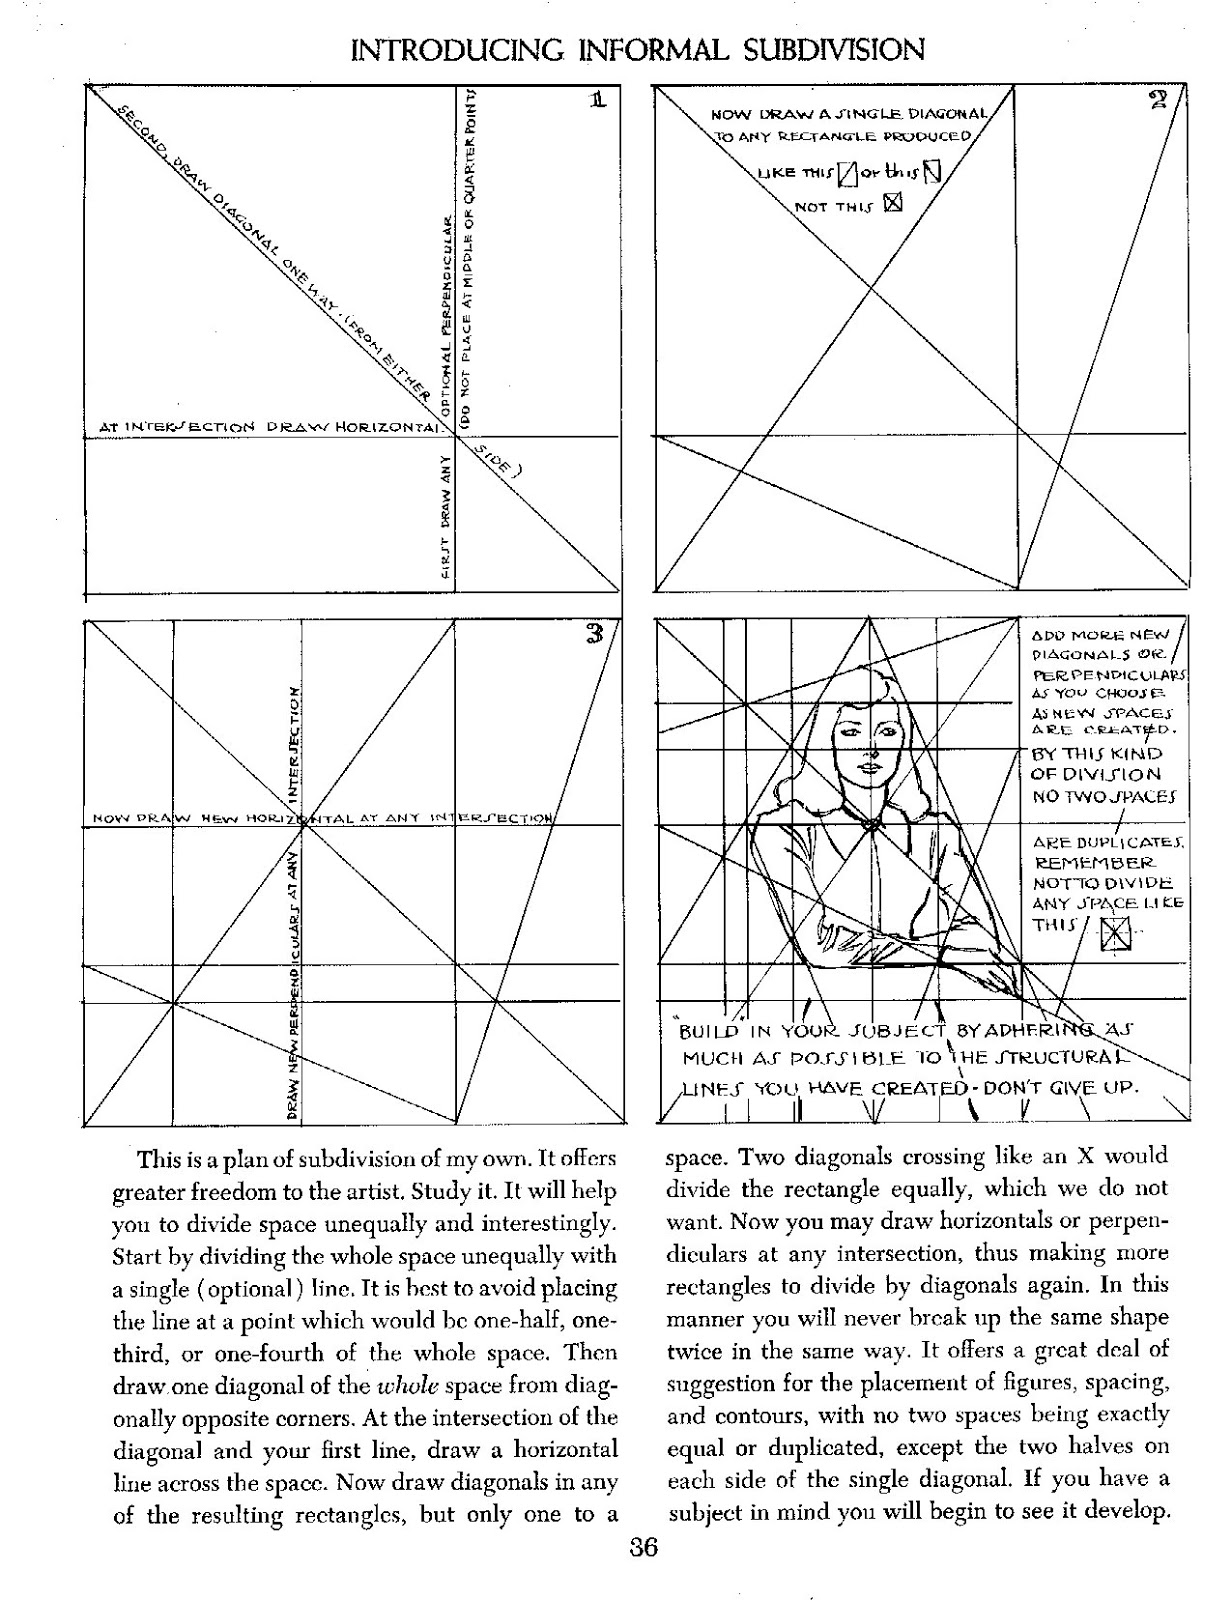 Kreated By Krause Andrew Loomis S Informal Subdivision